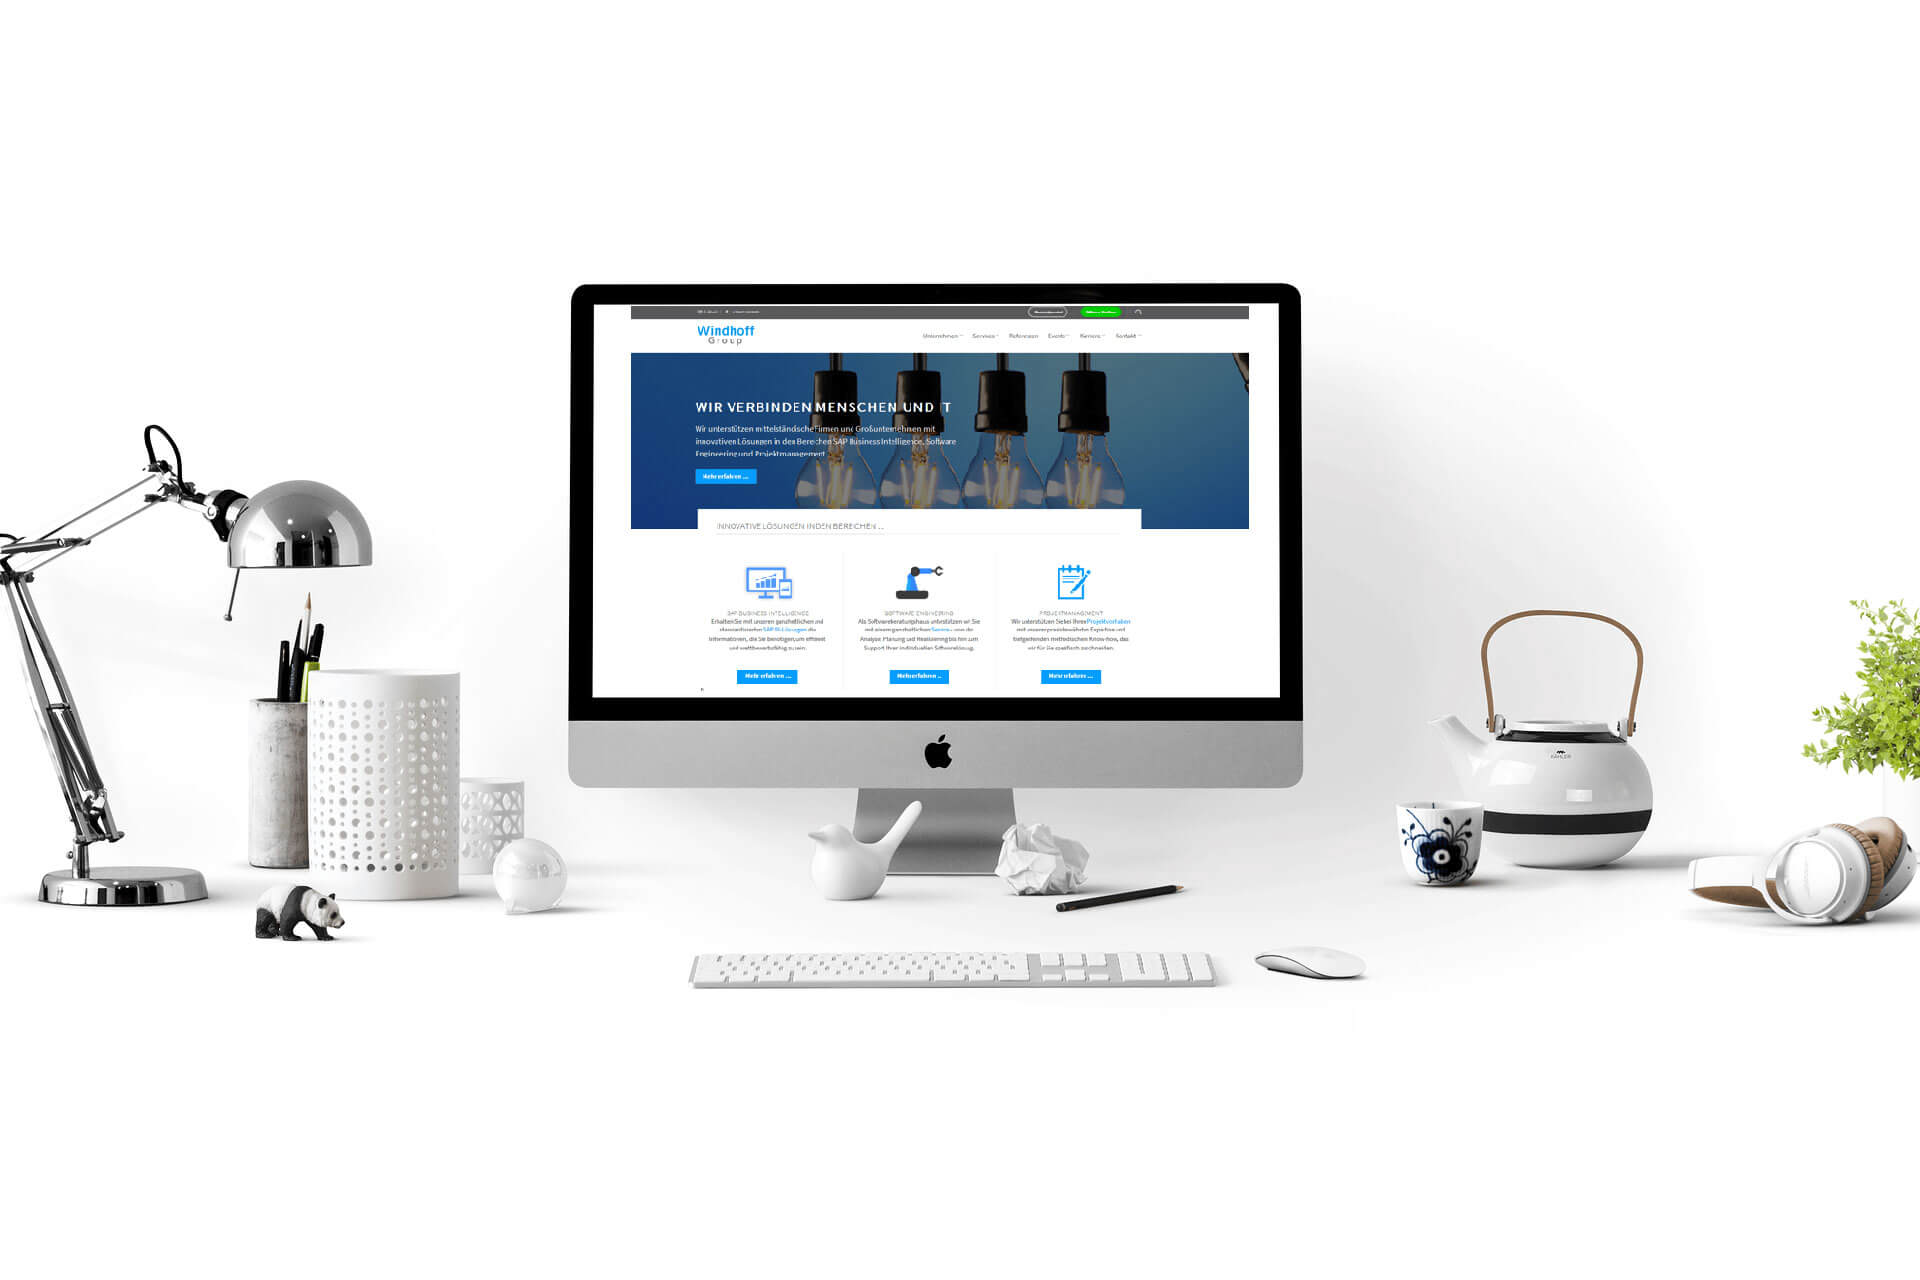 windhoff-group-website-relaunch